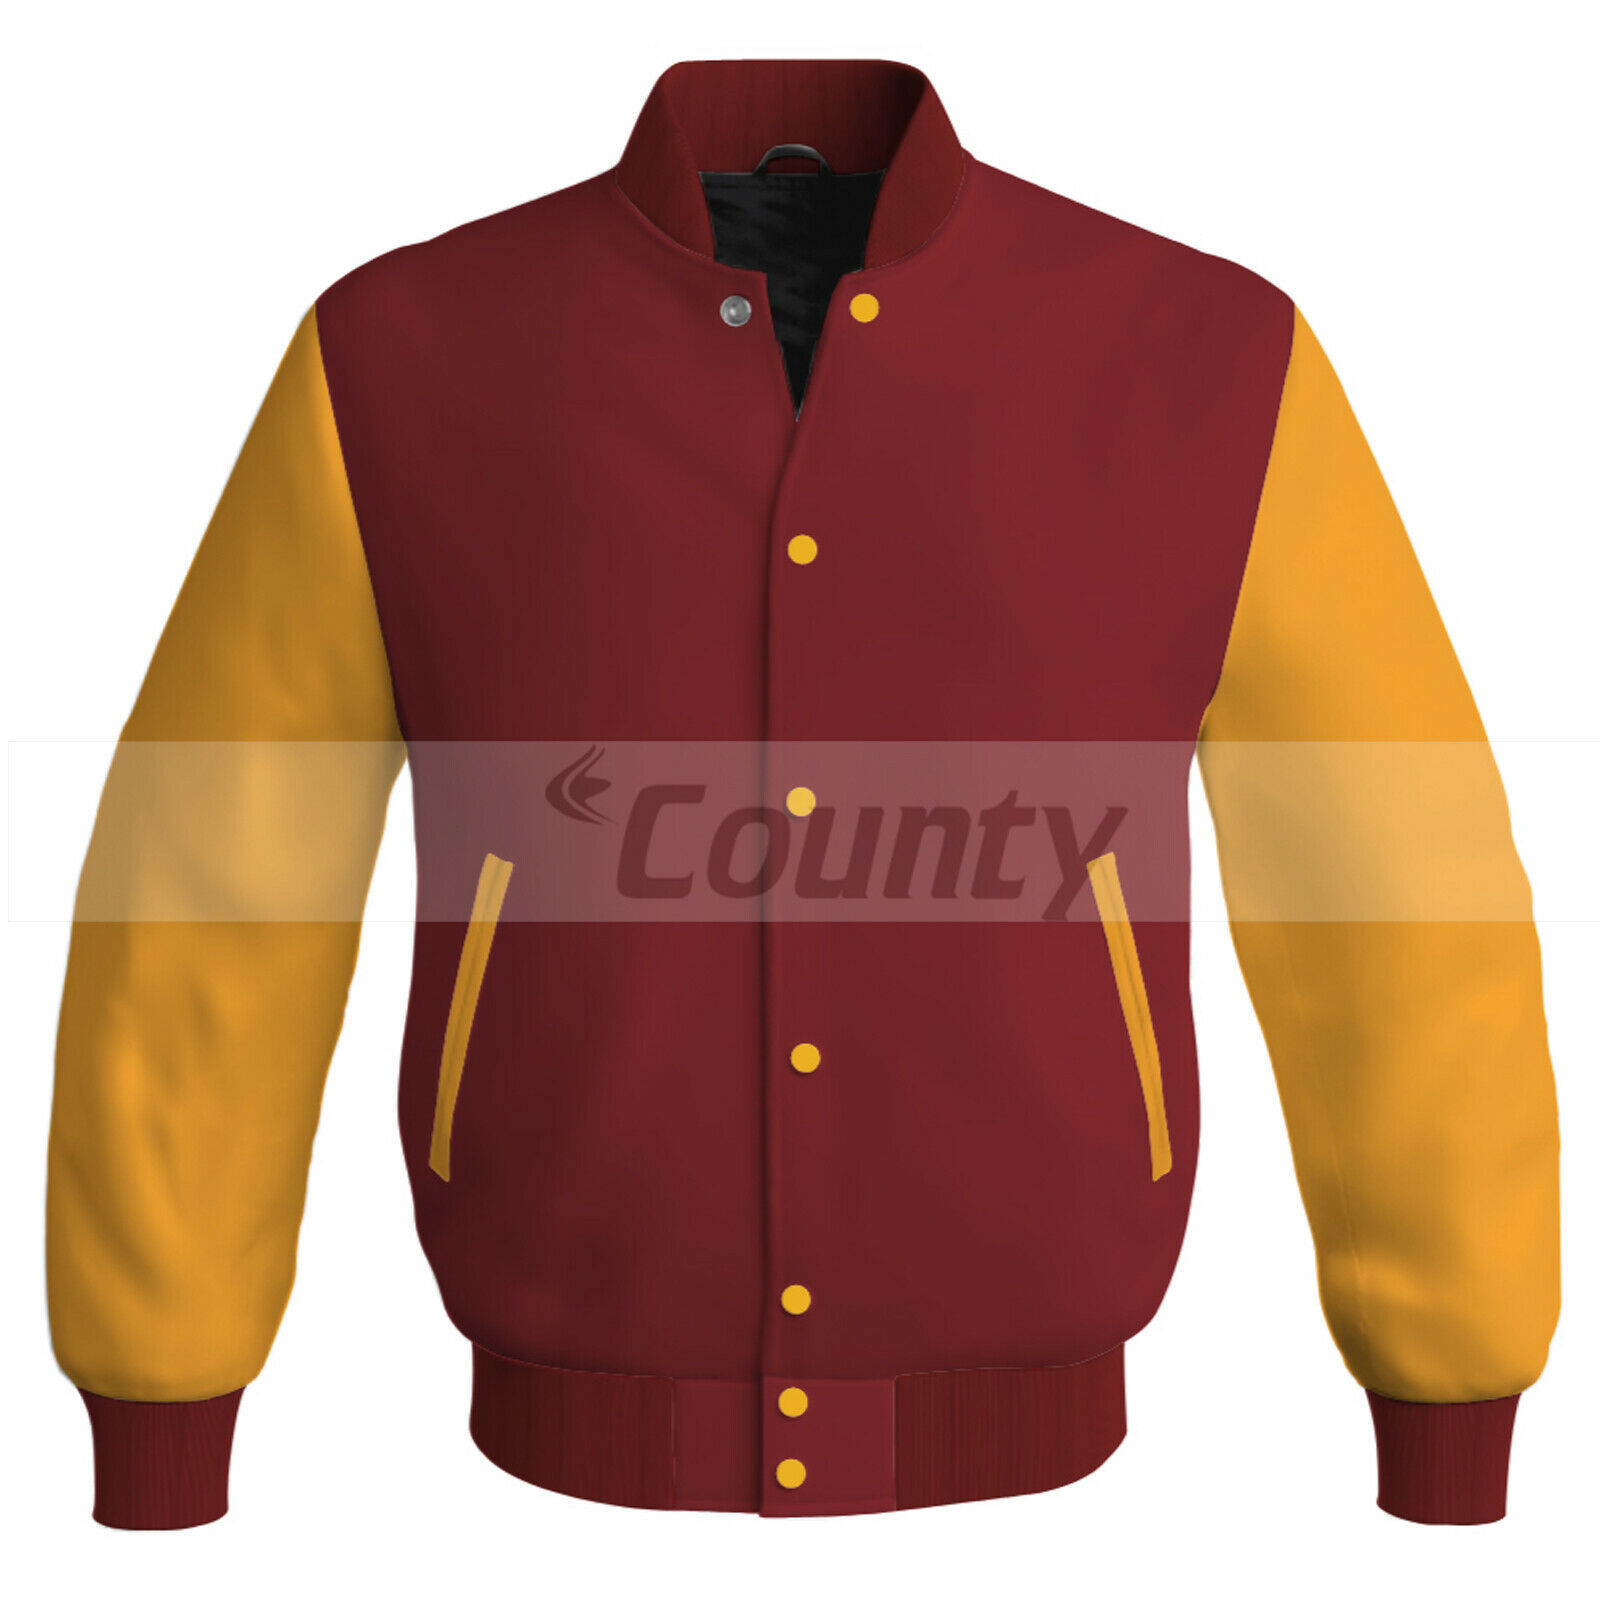 Primary image for Super Letterman Baseball College Bomber Jacket Sports Maroon Golden Satin